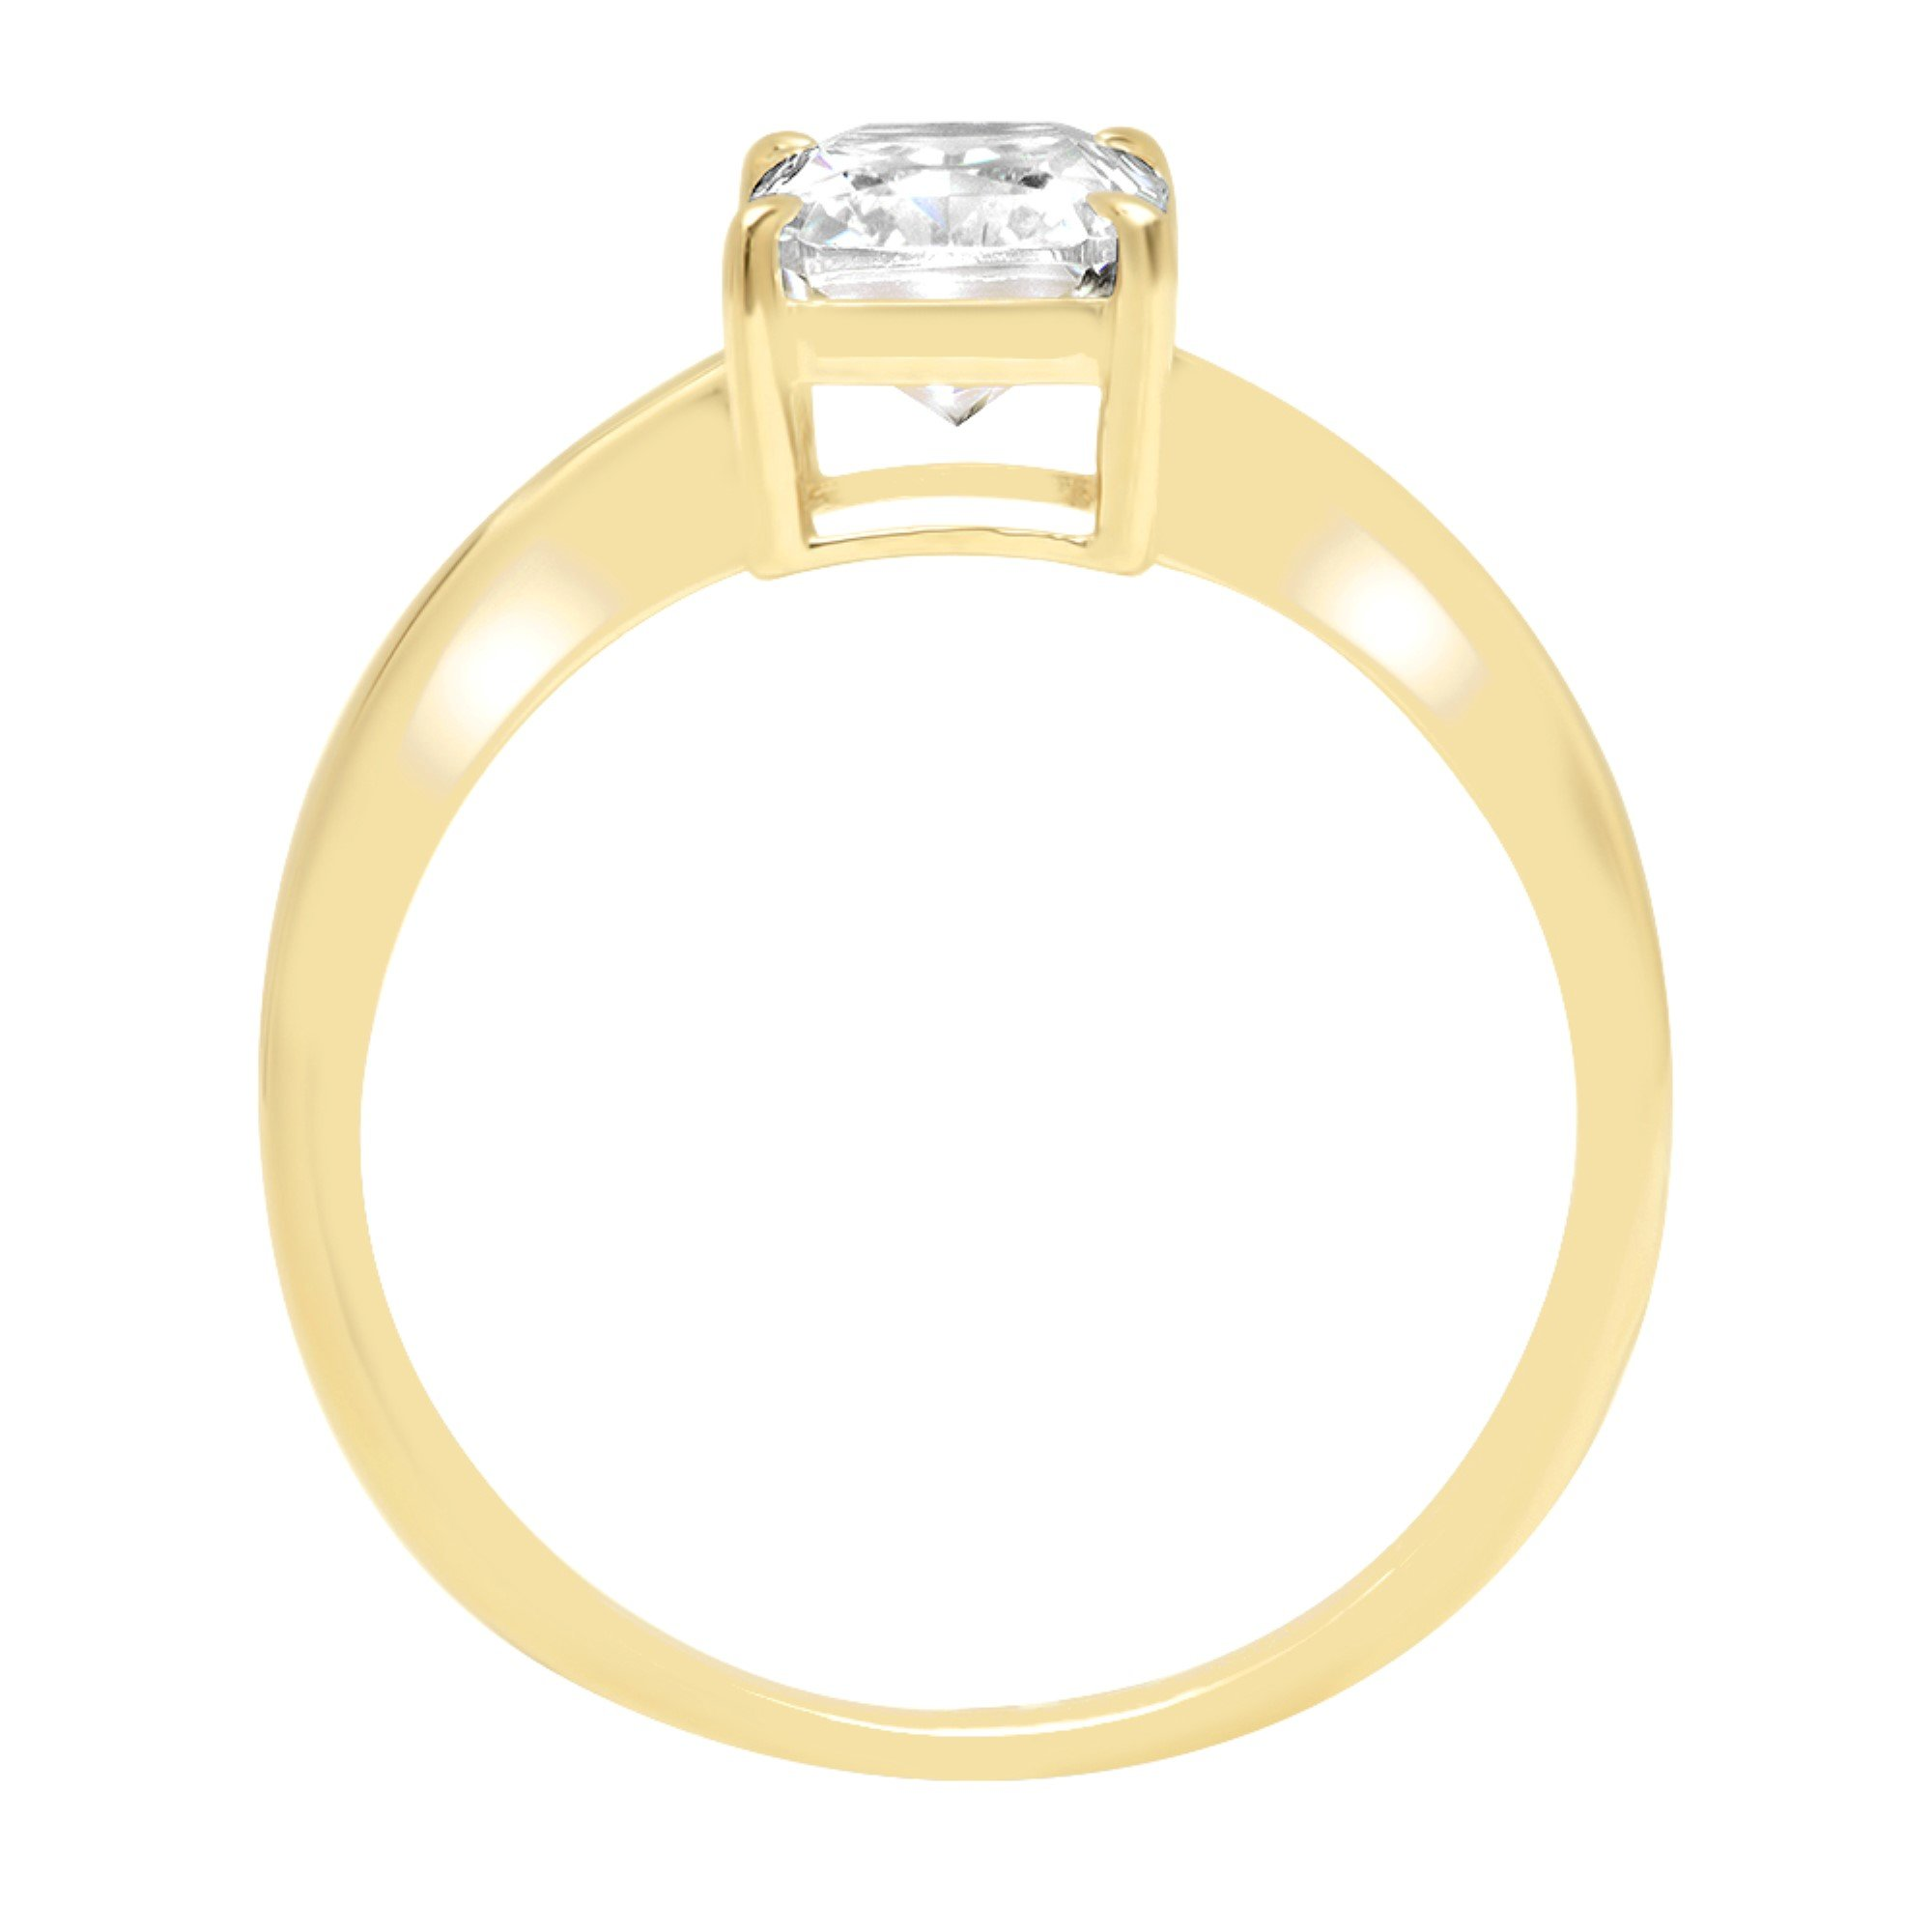 Radiant Brilliant Cut Classic Solitaire Designer Wedding Bridal Statement Anniversary Engagement Promise Ring Solid 14k Yellow Gold, 2.7ct, 5 by Clara Pucci (Image #1)